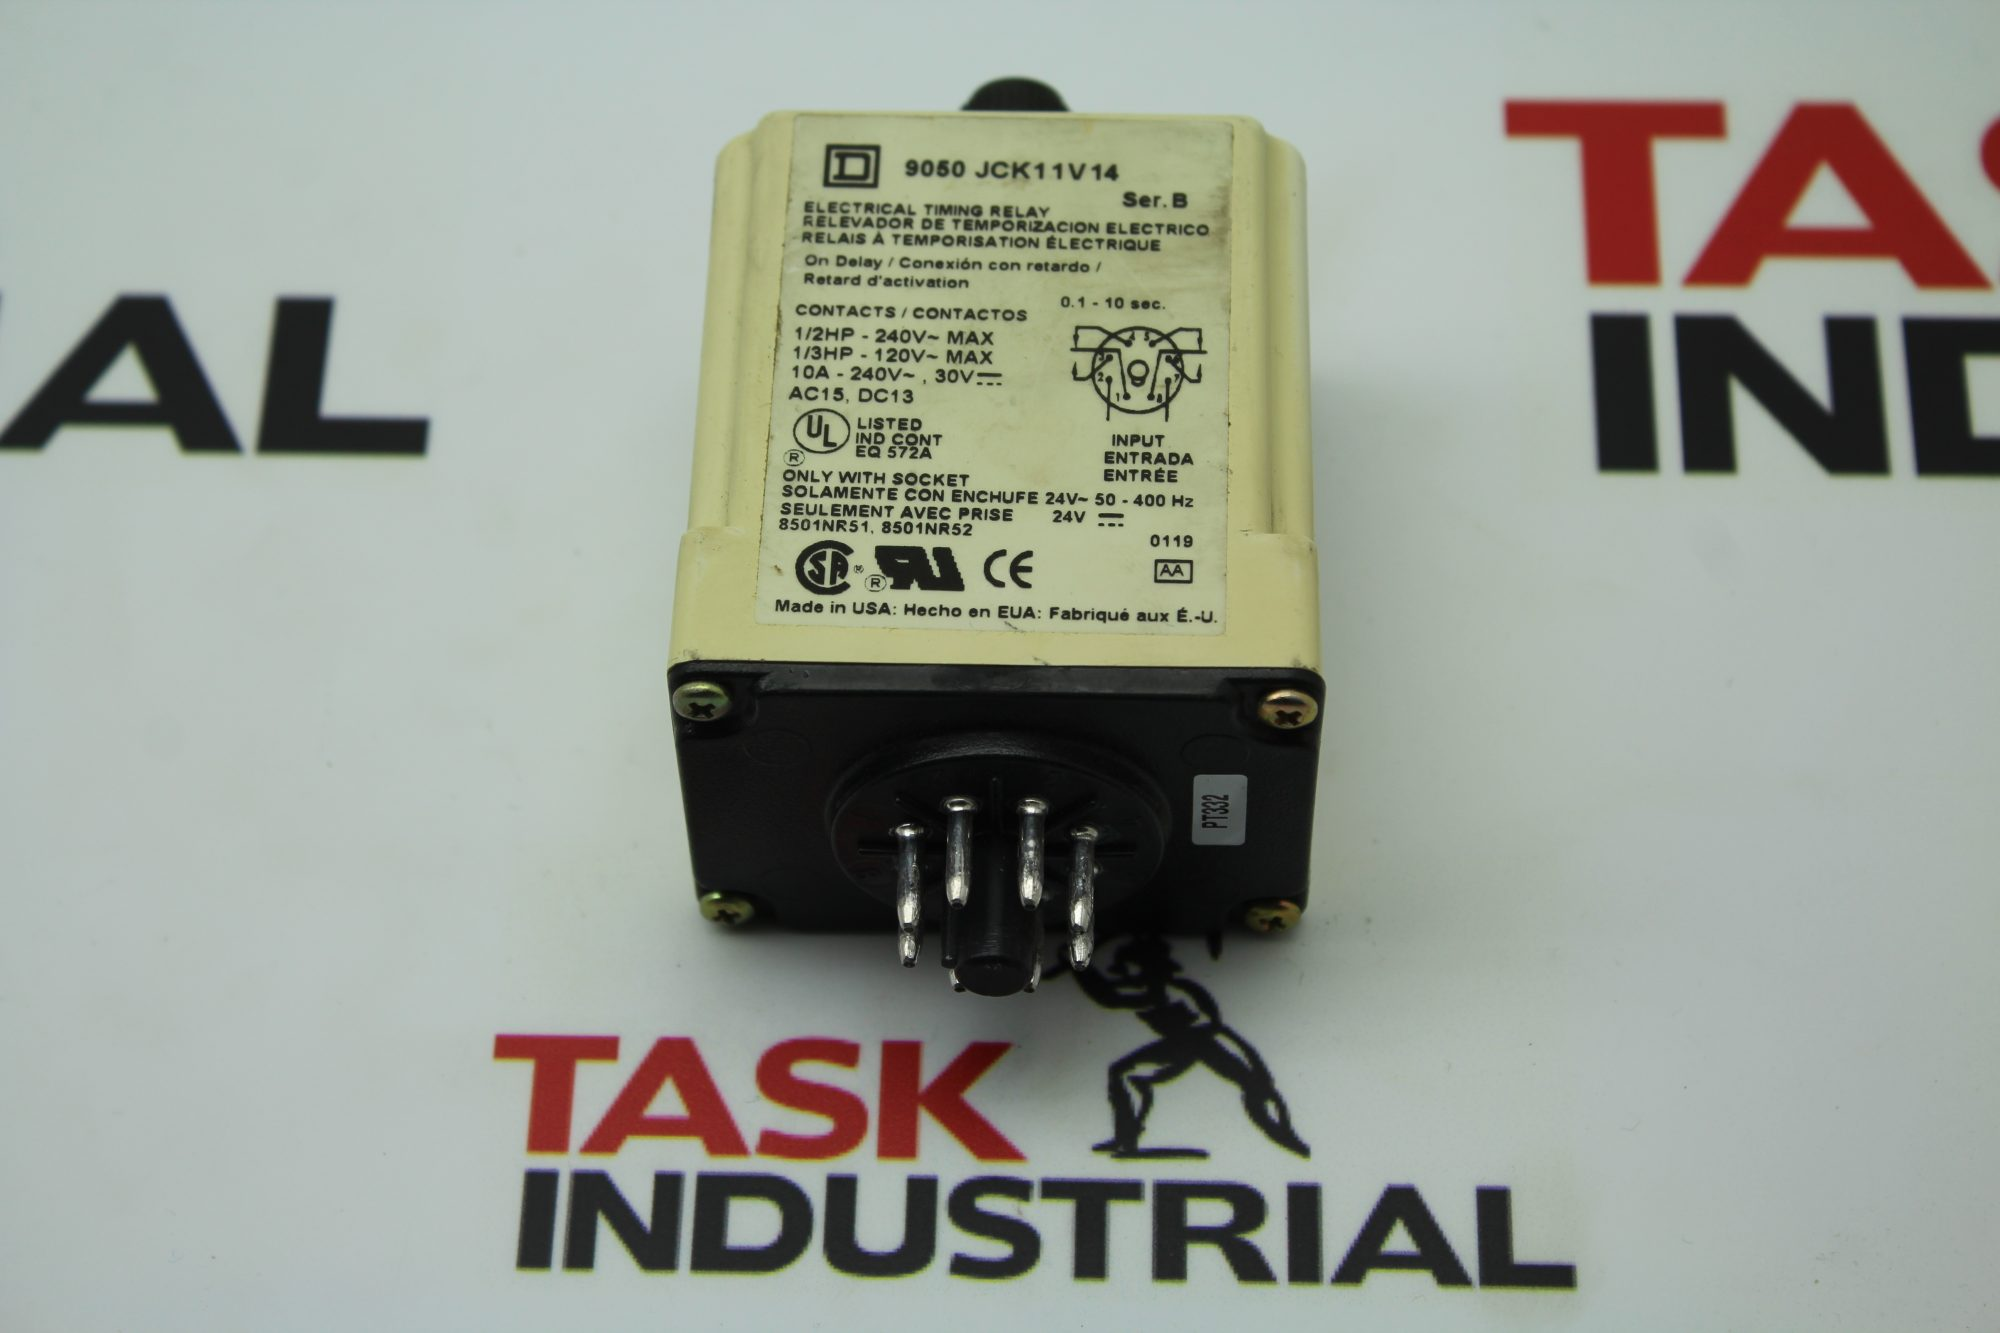 Square D 9050 JCK11V14 Electrical Timing Relay